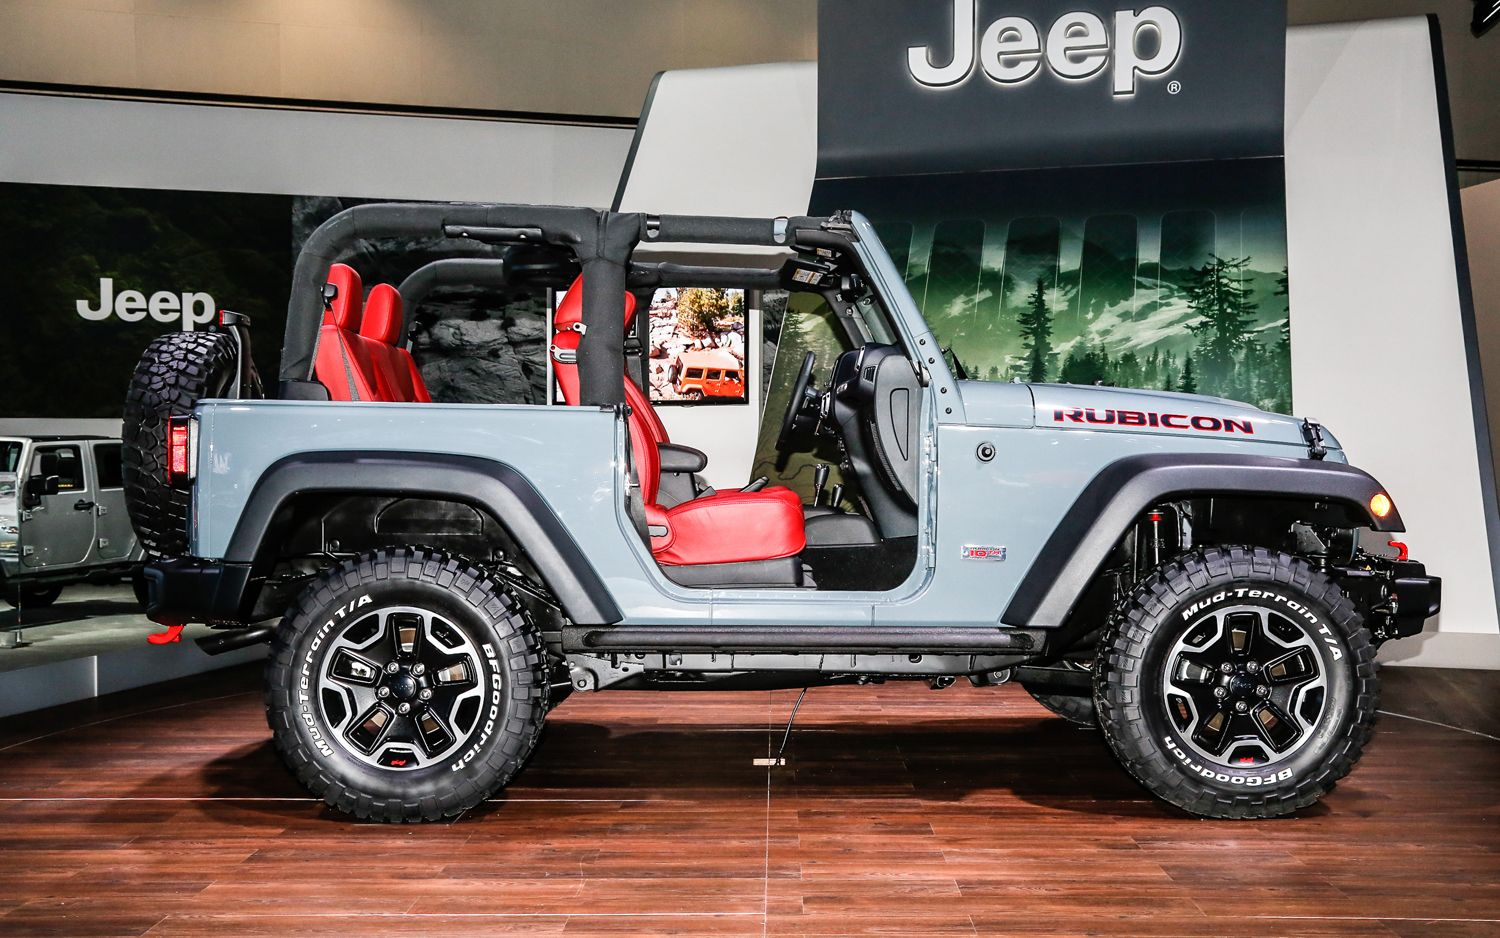 2 Door Jeep Without Doors Google Search Jeep Wrangler Rubicon